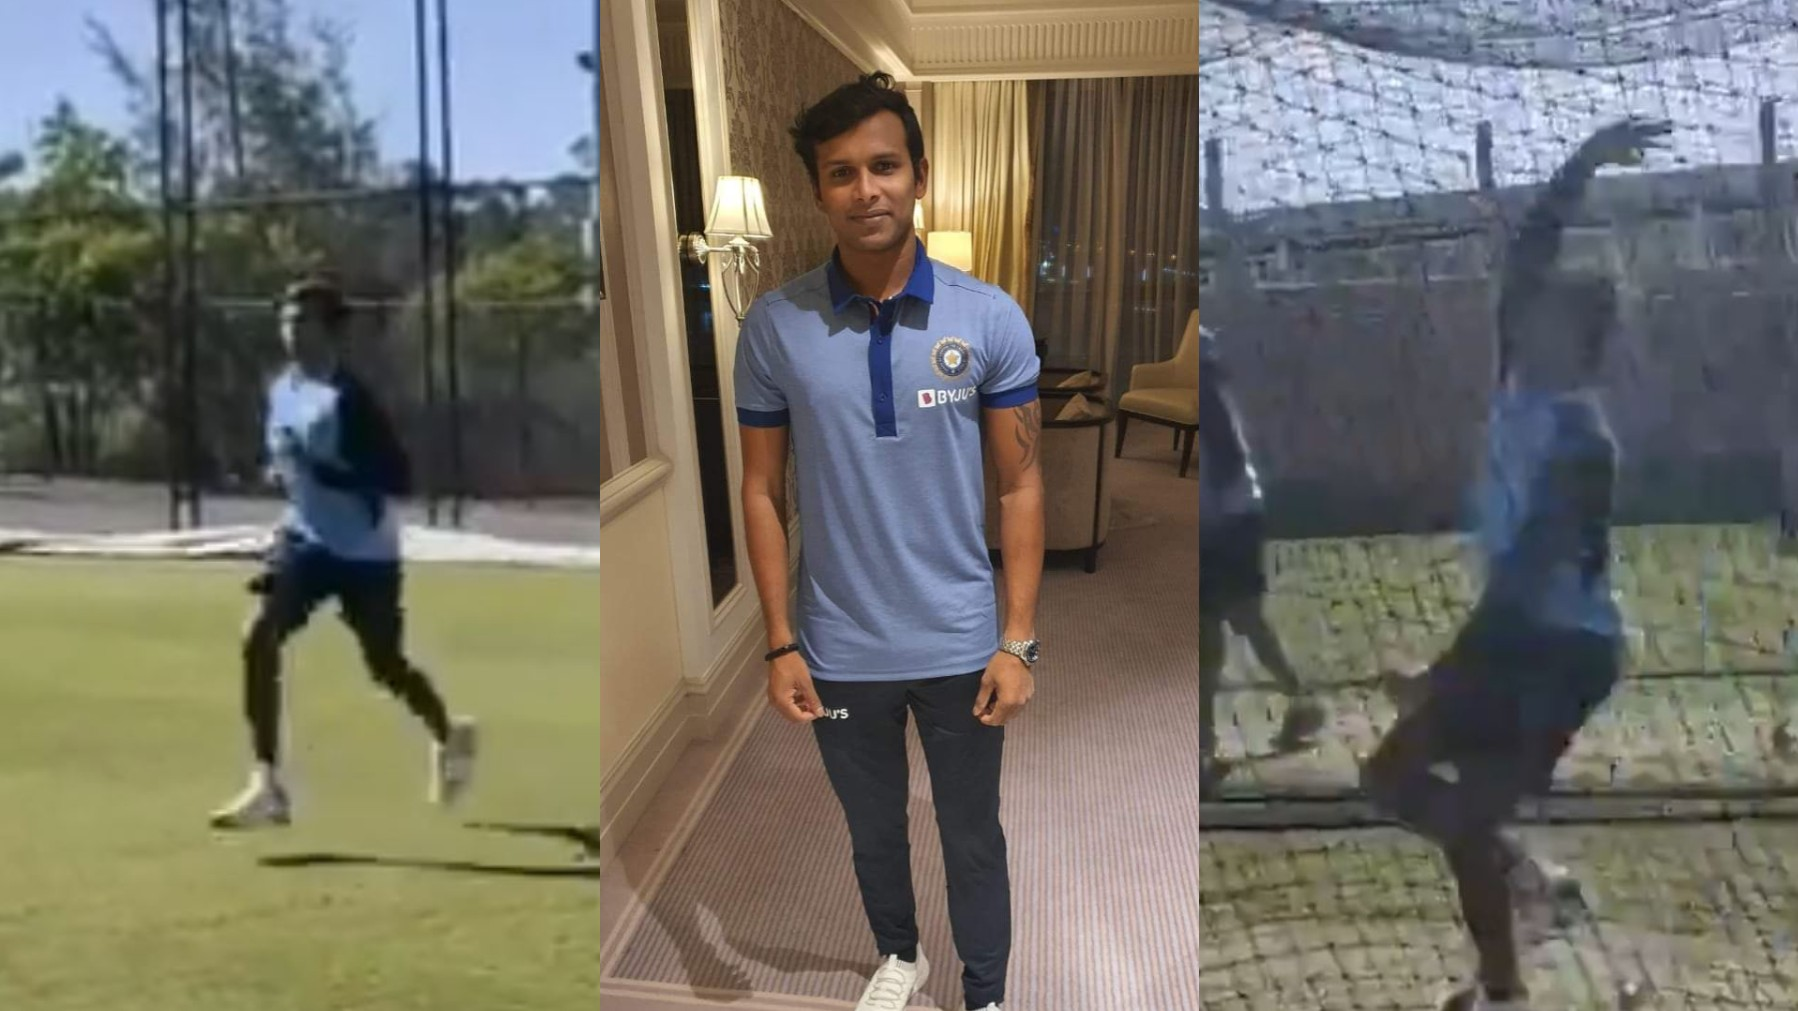 AUS v IND 2020-21: WATCH- T Natarajan bowls in the Team India nets for the first time